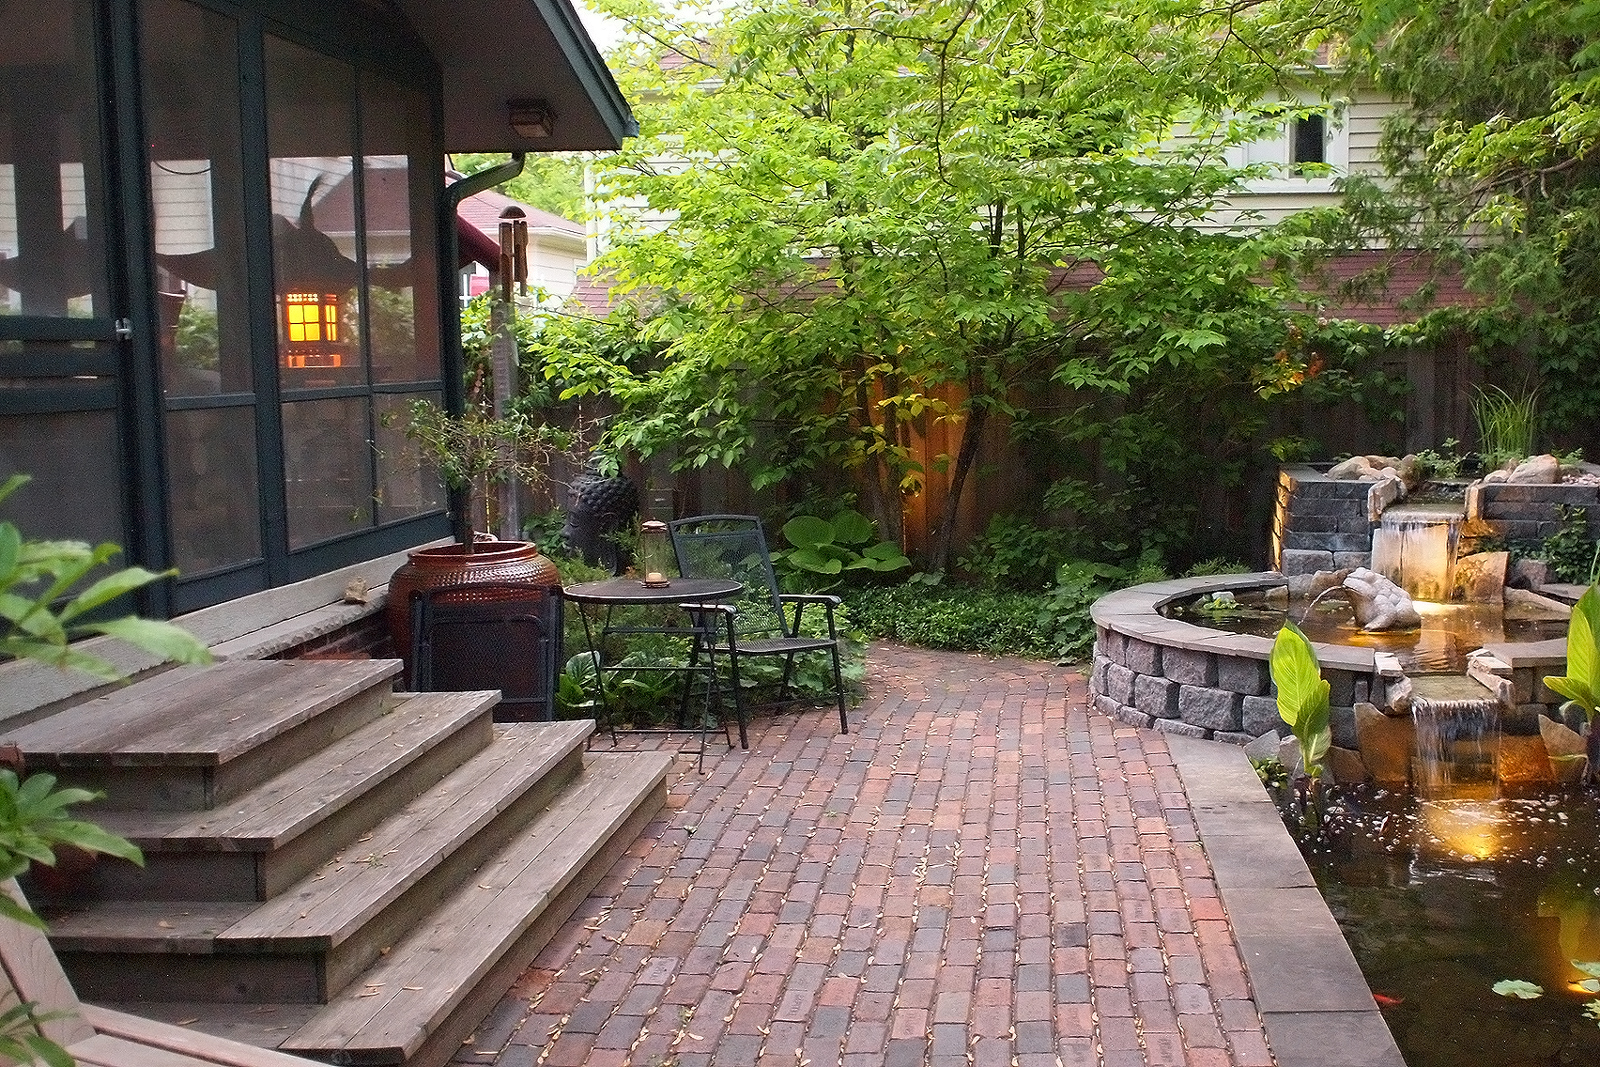 Paver Patio Ideas | Stone Patio Ideas | HouseLogic on Backyard Masonry Ideas id=12340